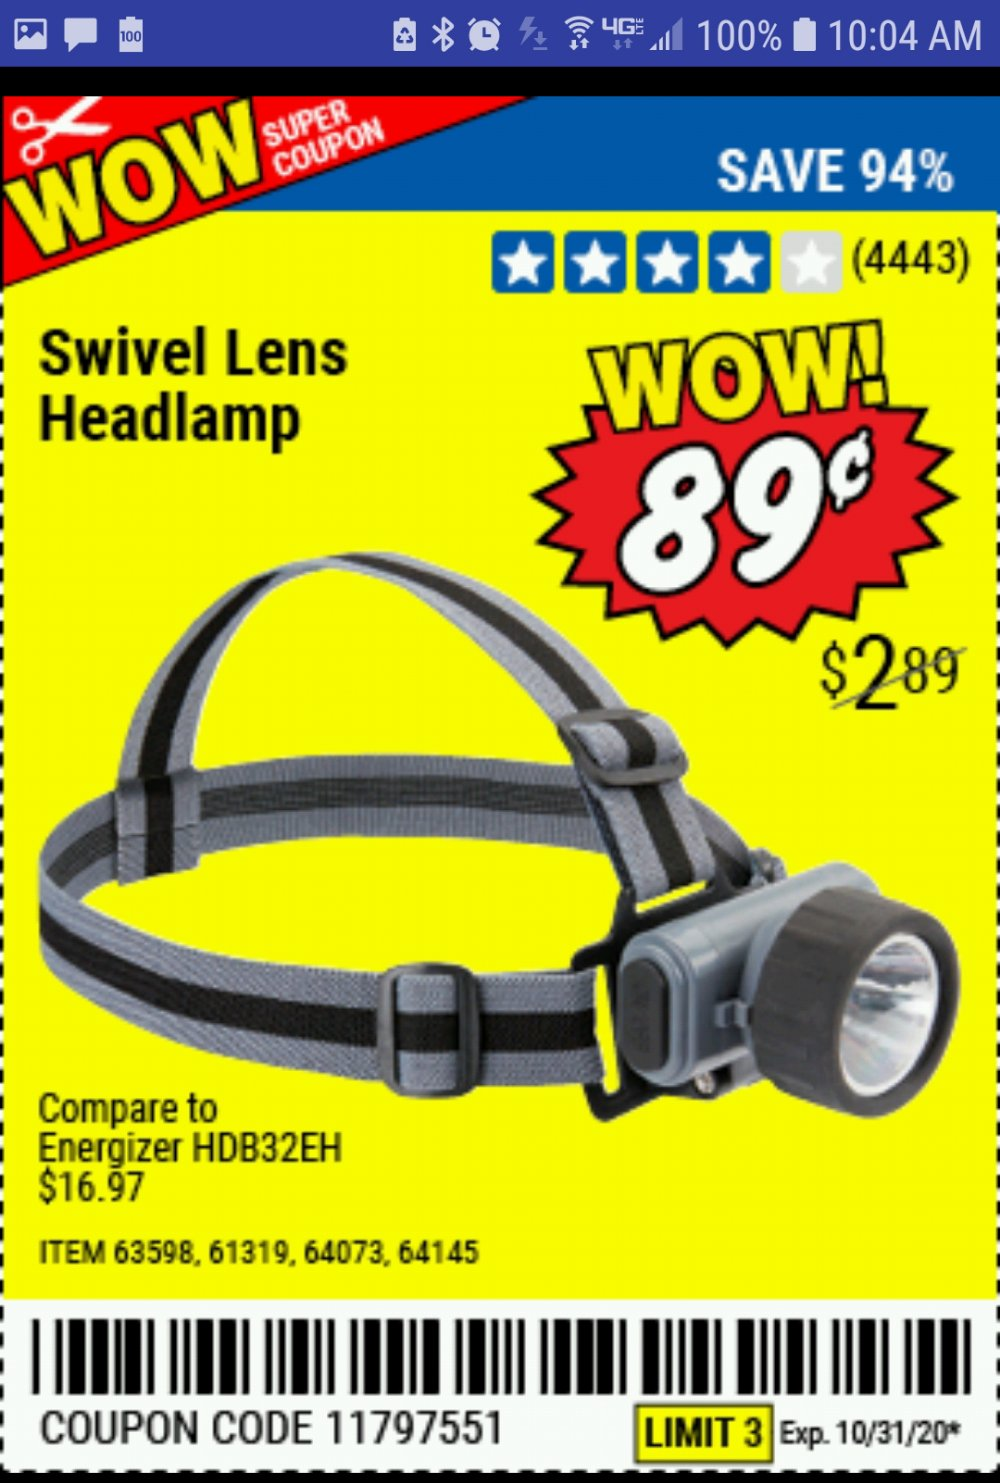 Harbor Freight Coupon, HF Coupons - Headlamp With Swivel Lens